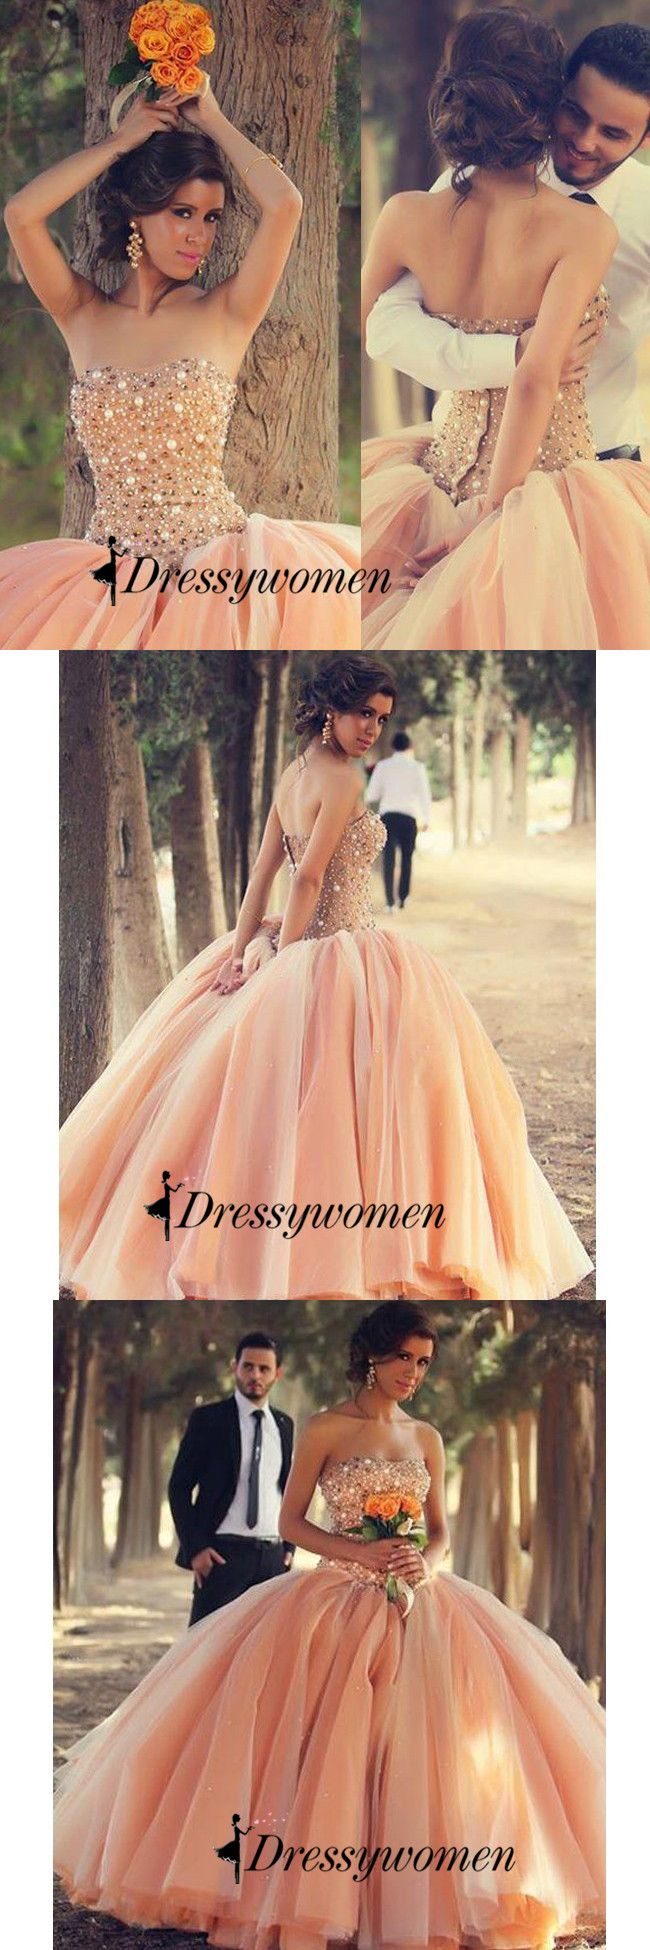 long prom dresses 2016, strapless prom dresses, ball gown, light orange prom dresses with beaded